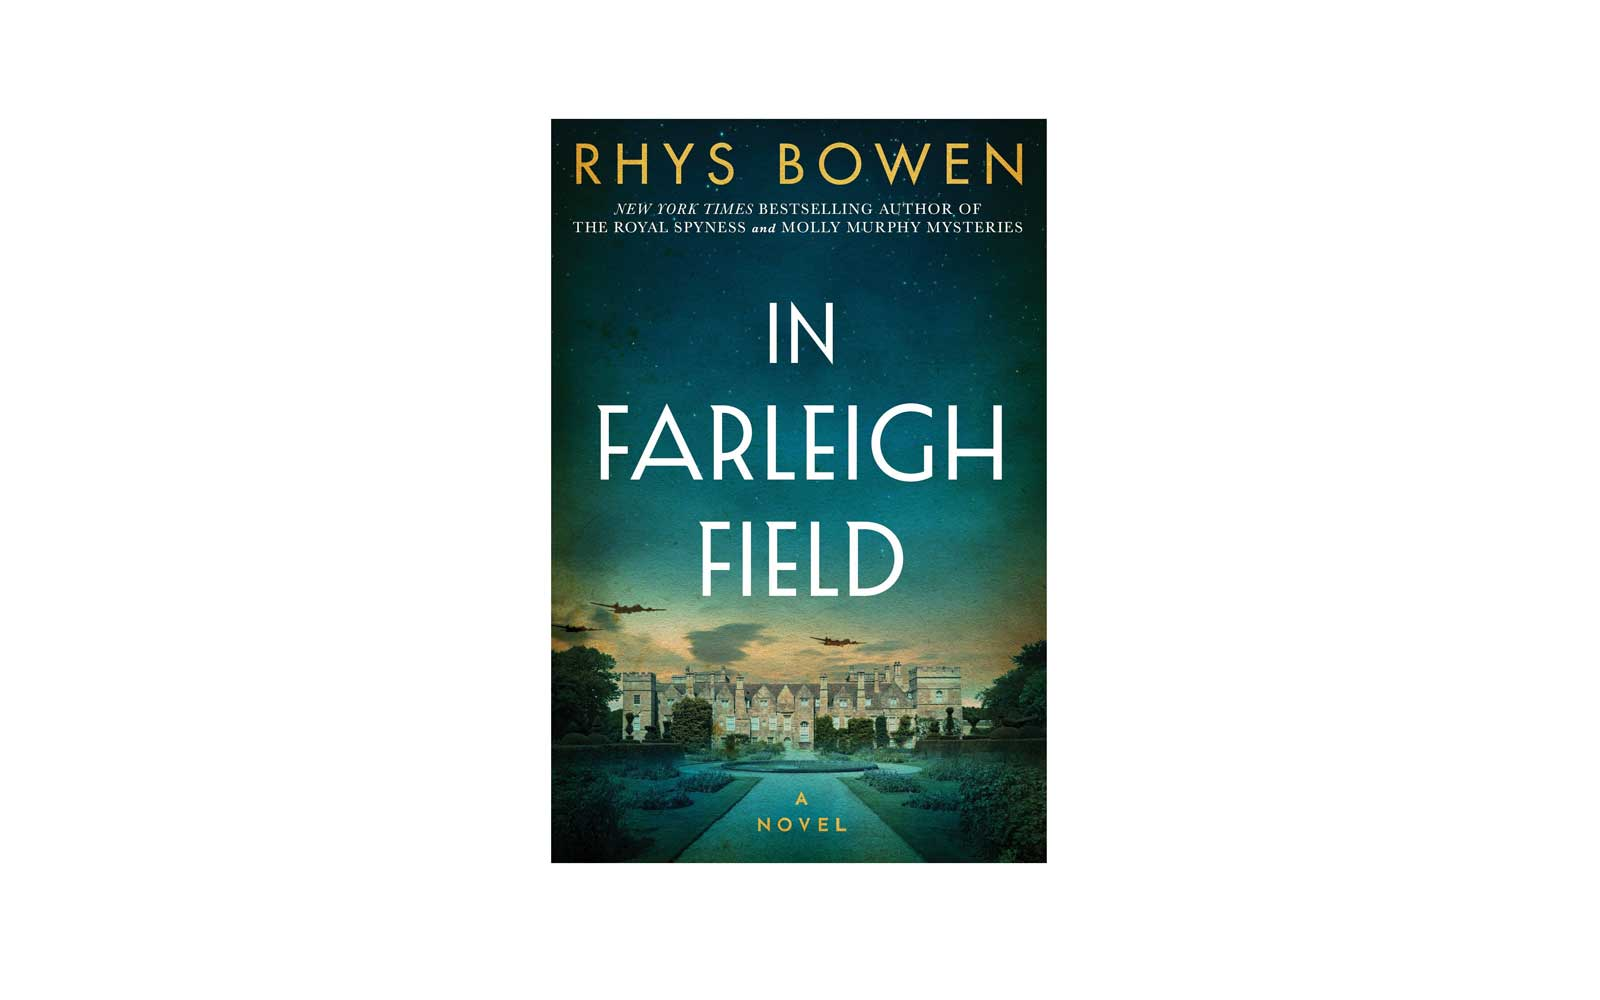 20 most popular Kindle books 2017 In Farleigh Field